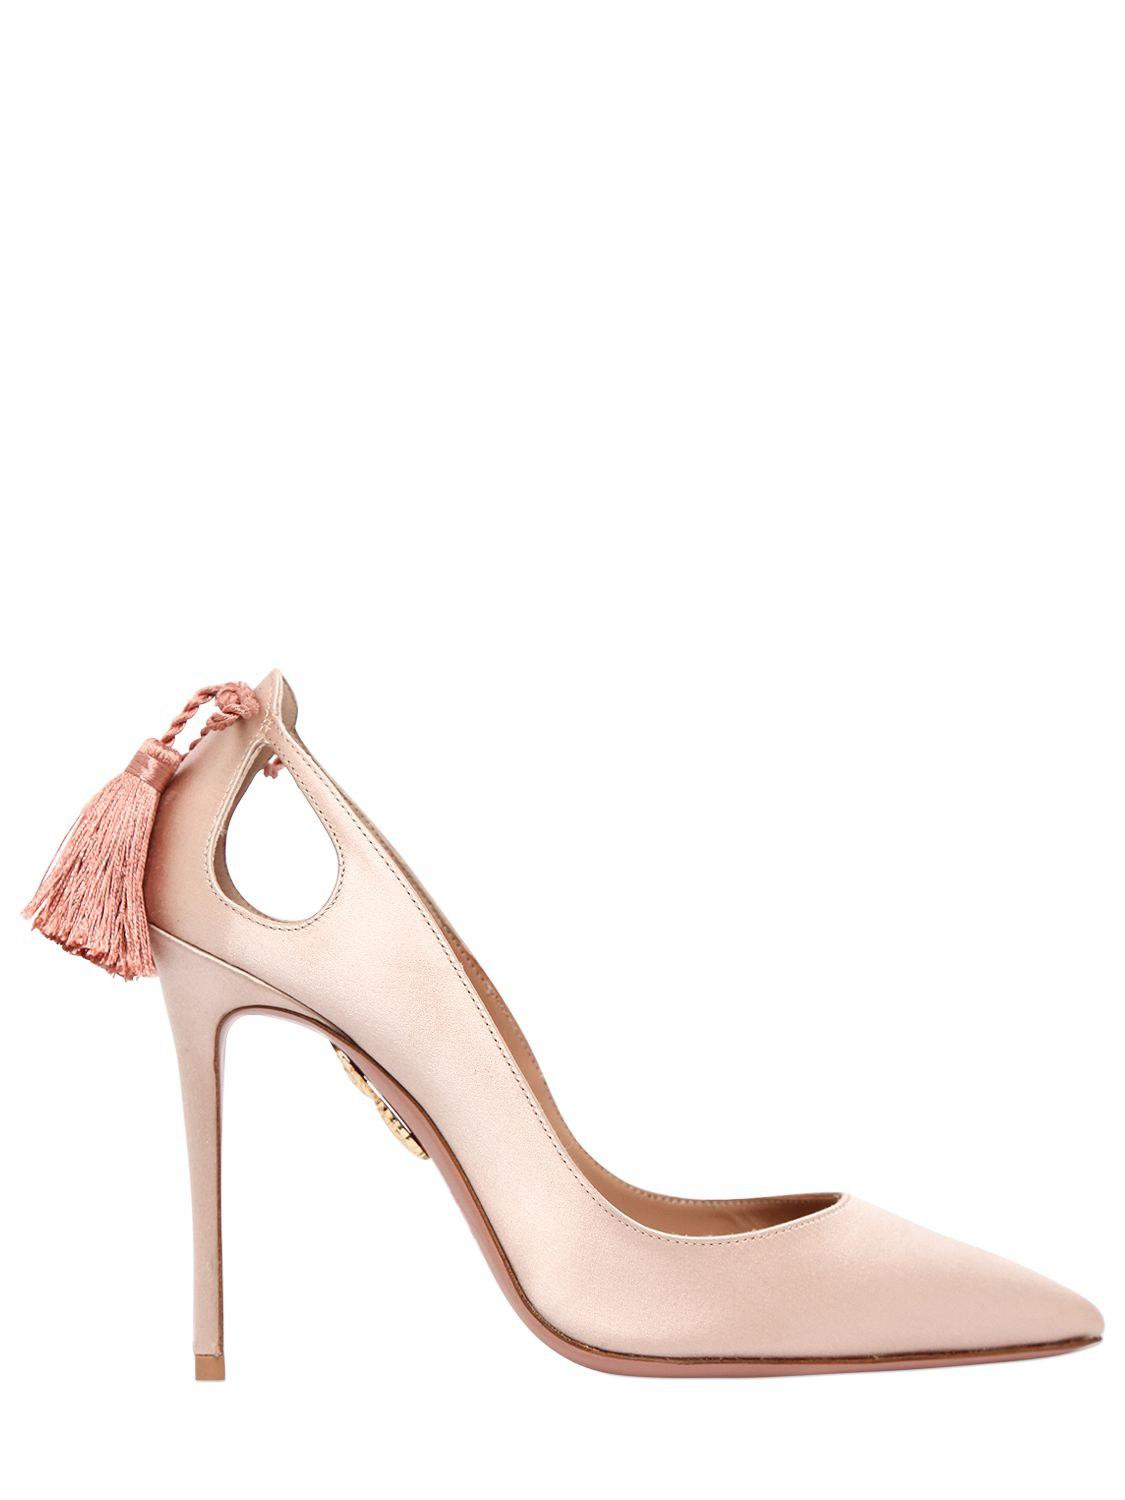 Aquazzura 105MM FOREVER MARYLYN SATIN PUMPS 100% Authentic Cheapest For Sale Outlet Cheapest Price Footlocker Pictures Low Shipping Fee Cheap Price 91slXR